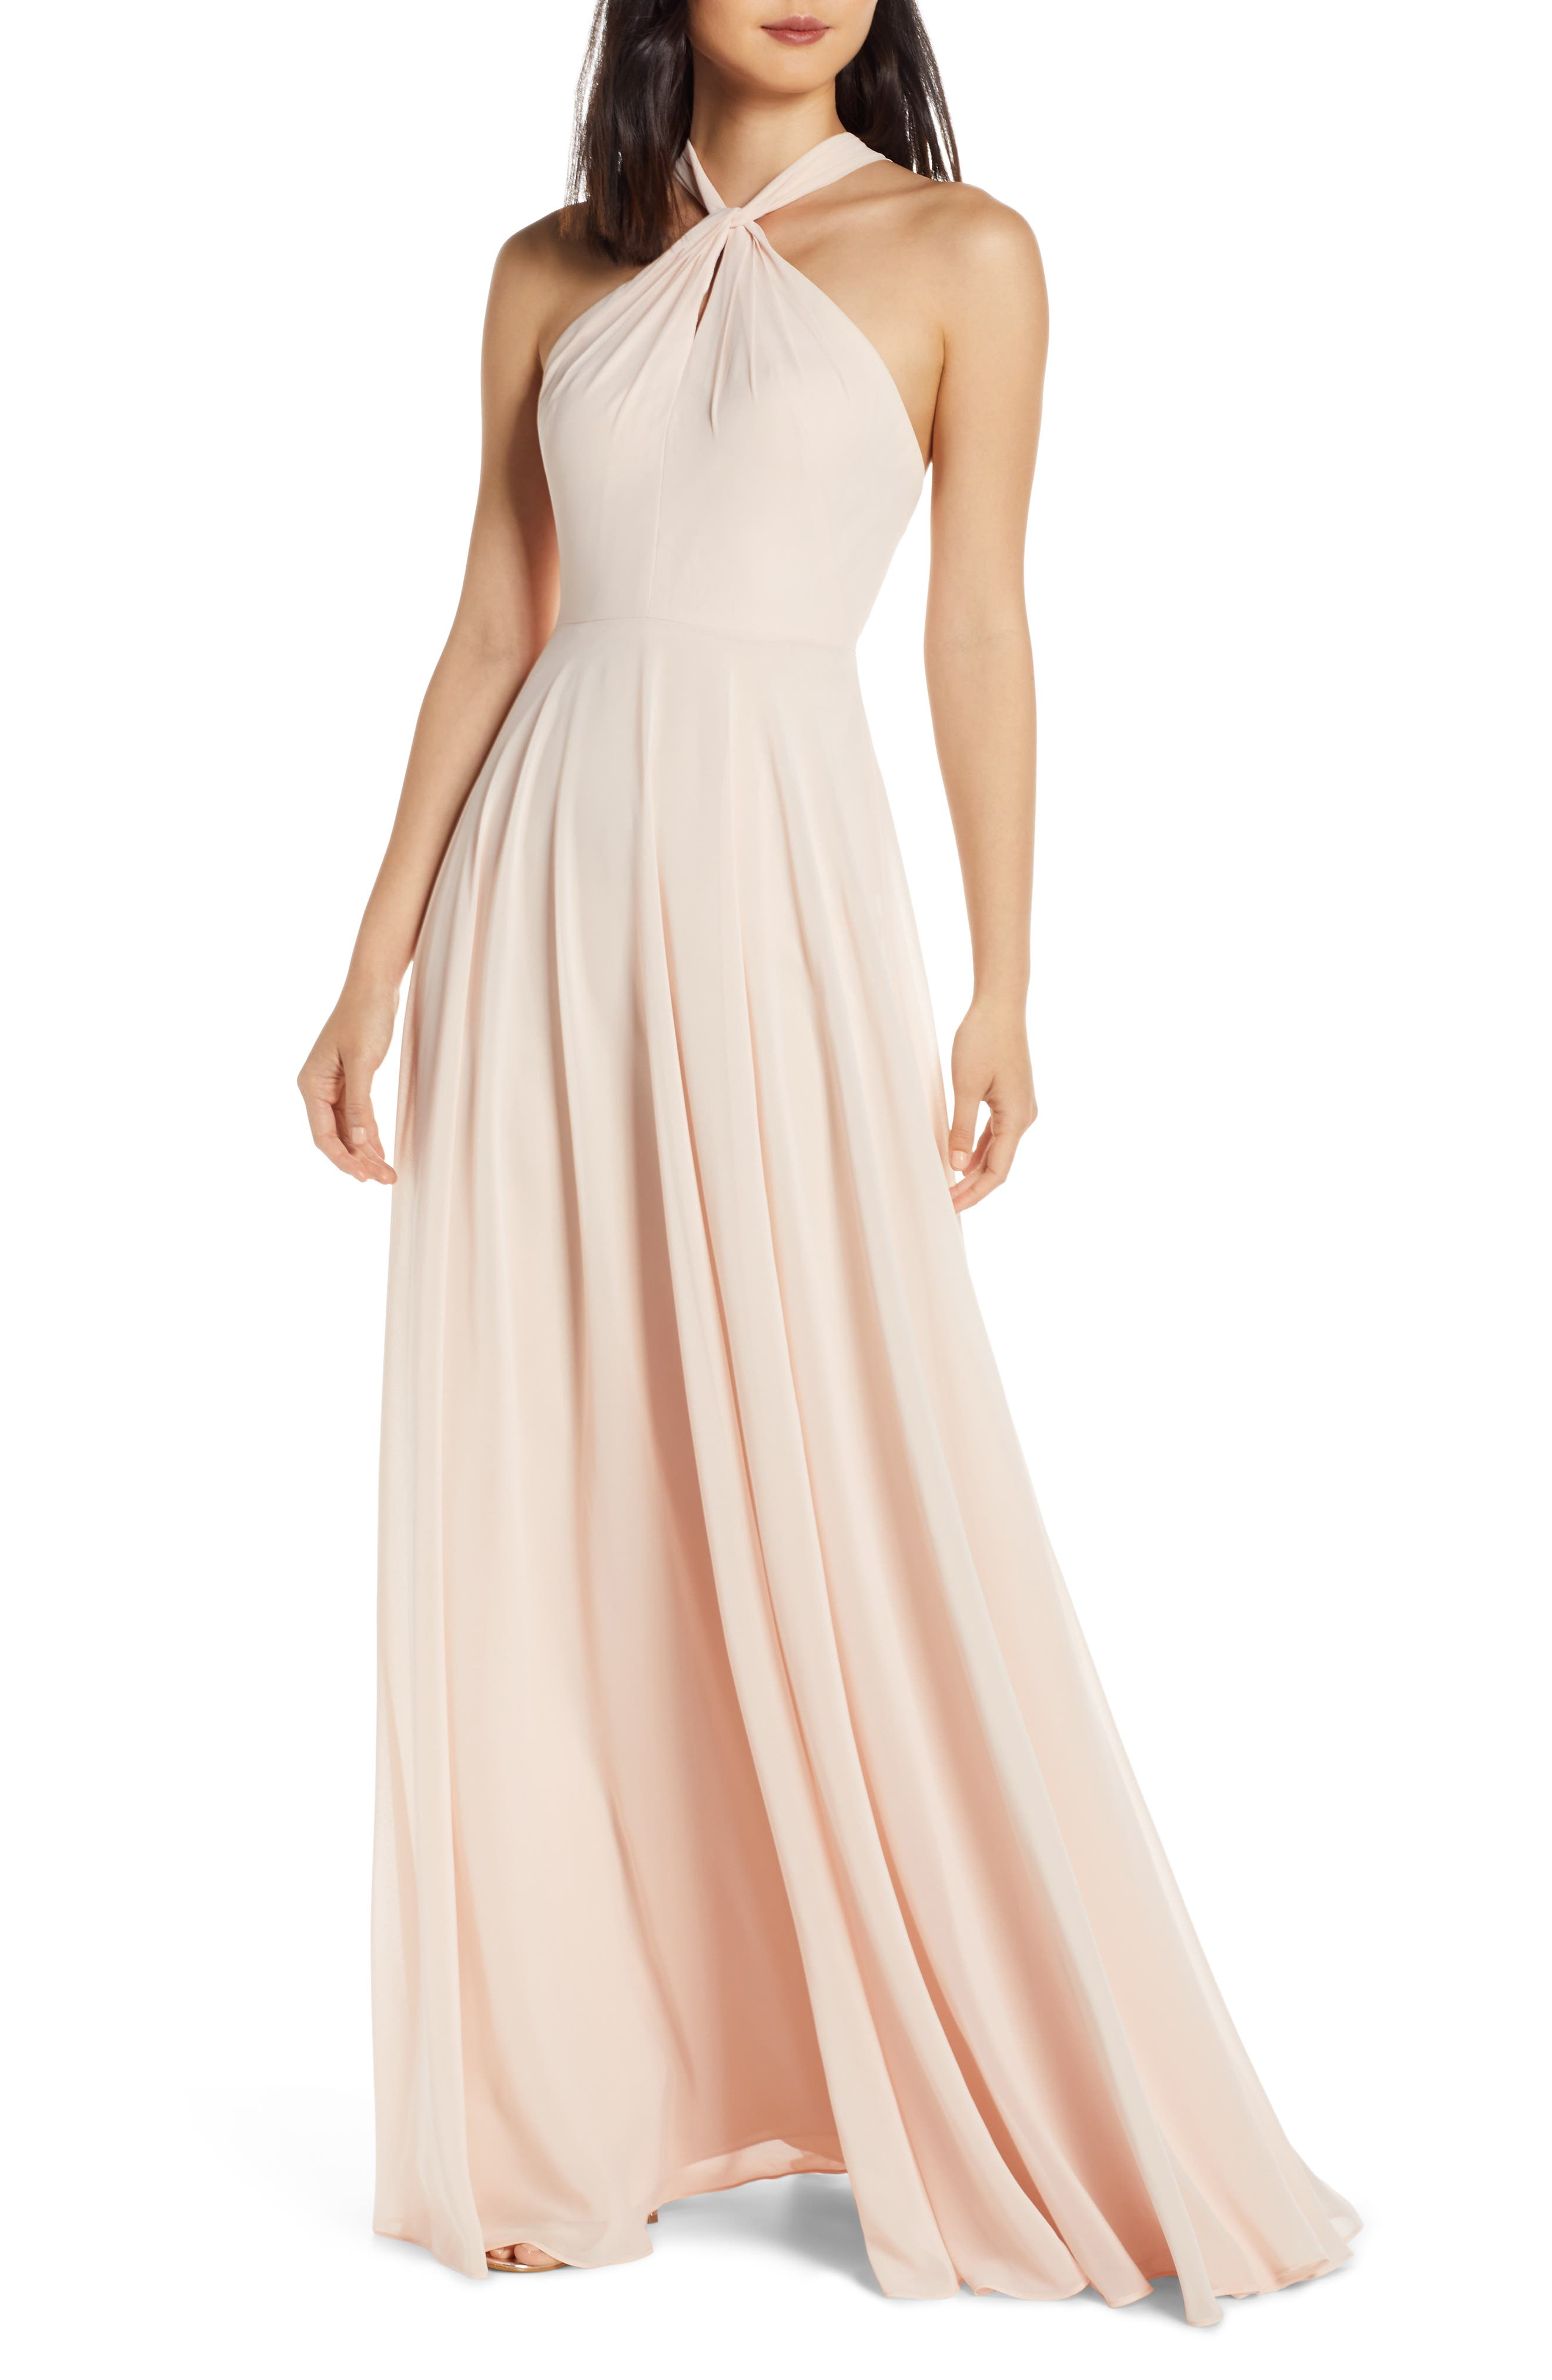 Jenny Yoo Halle Halter Evening Dress, Pink